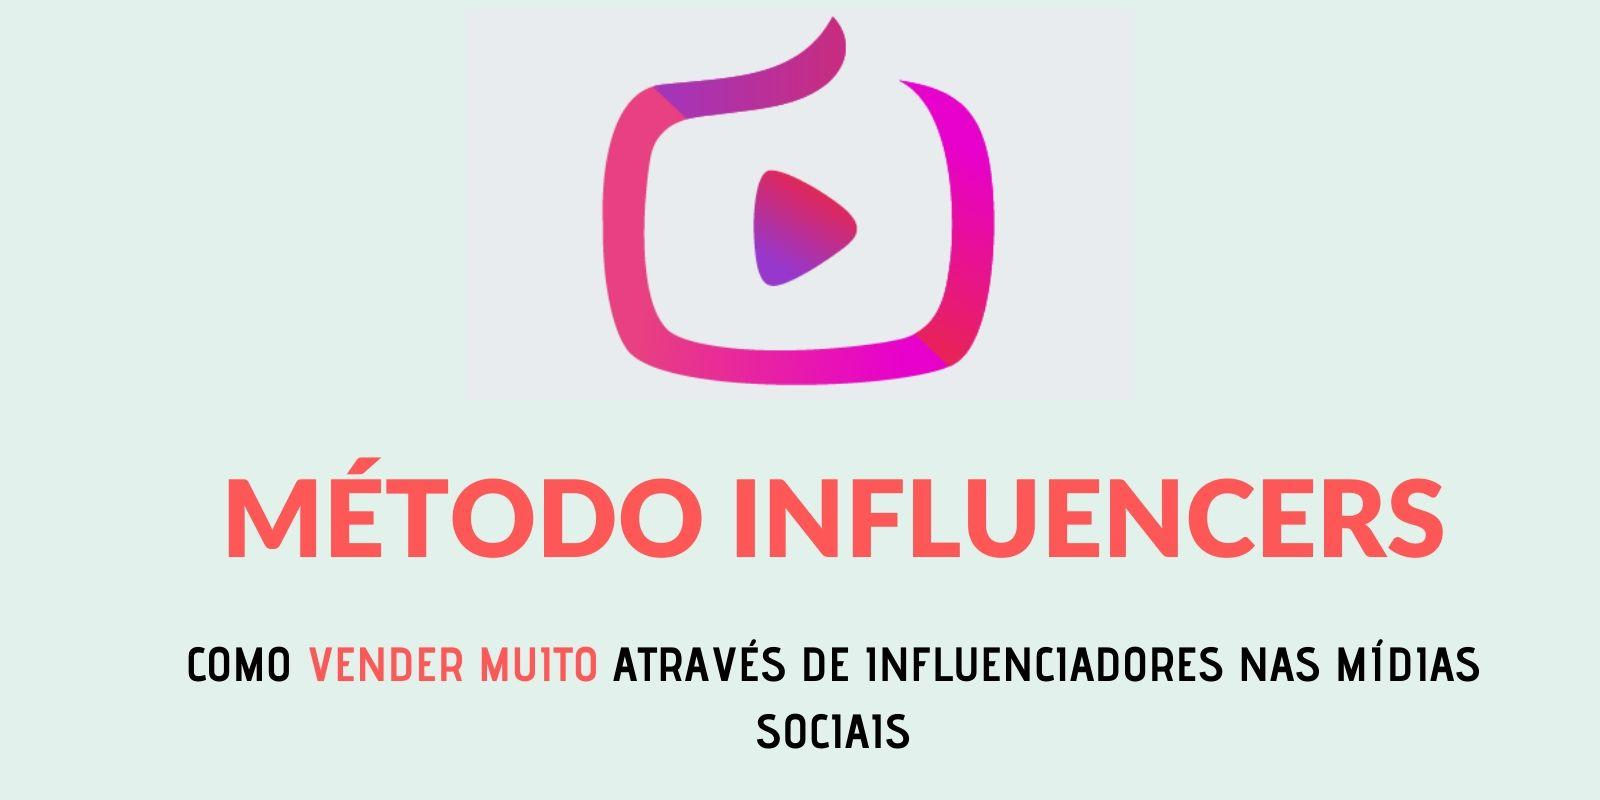 Método Influencers funciona ? Método Influencers vale apena ?